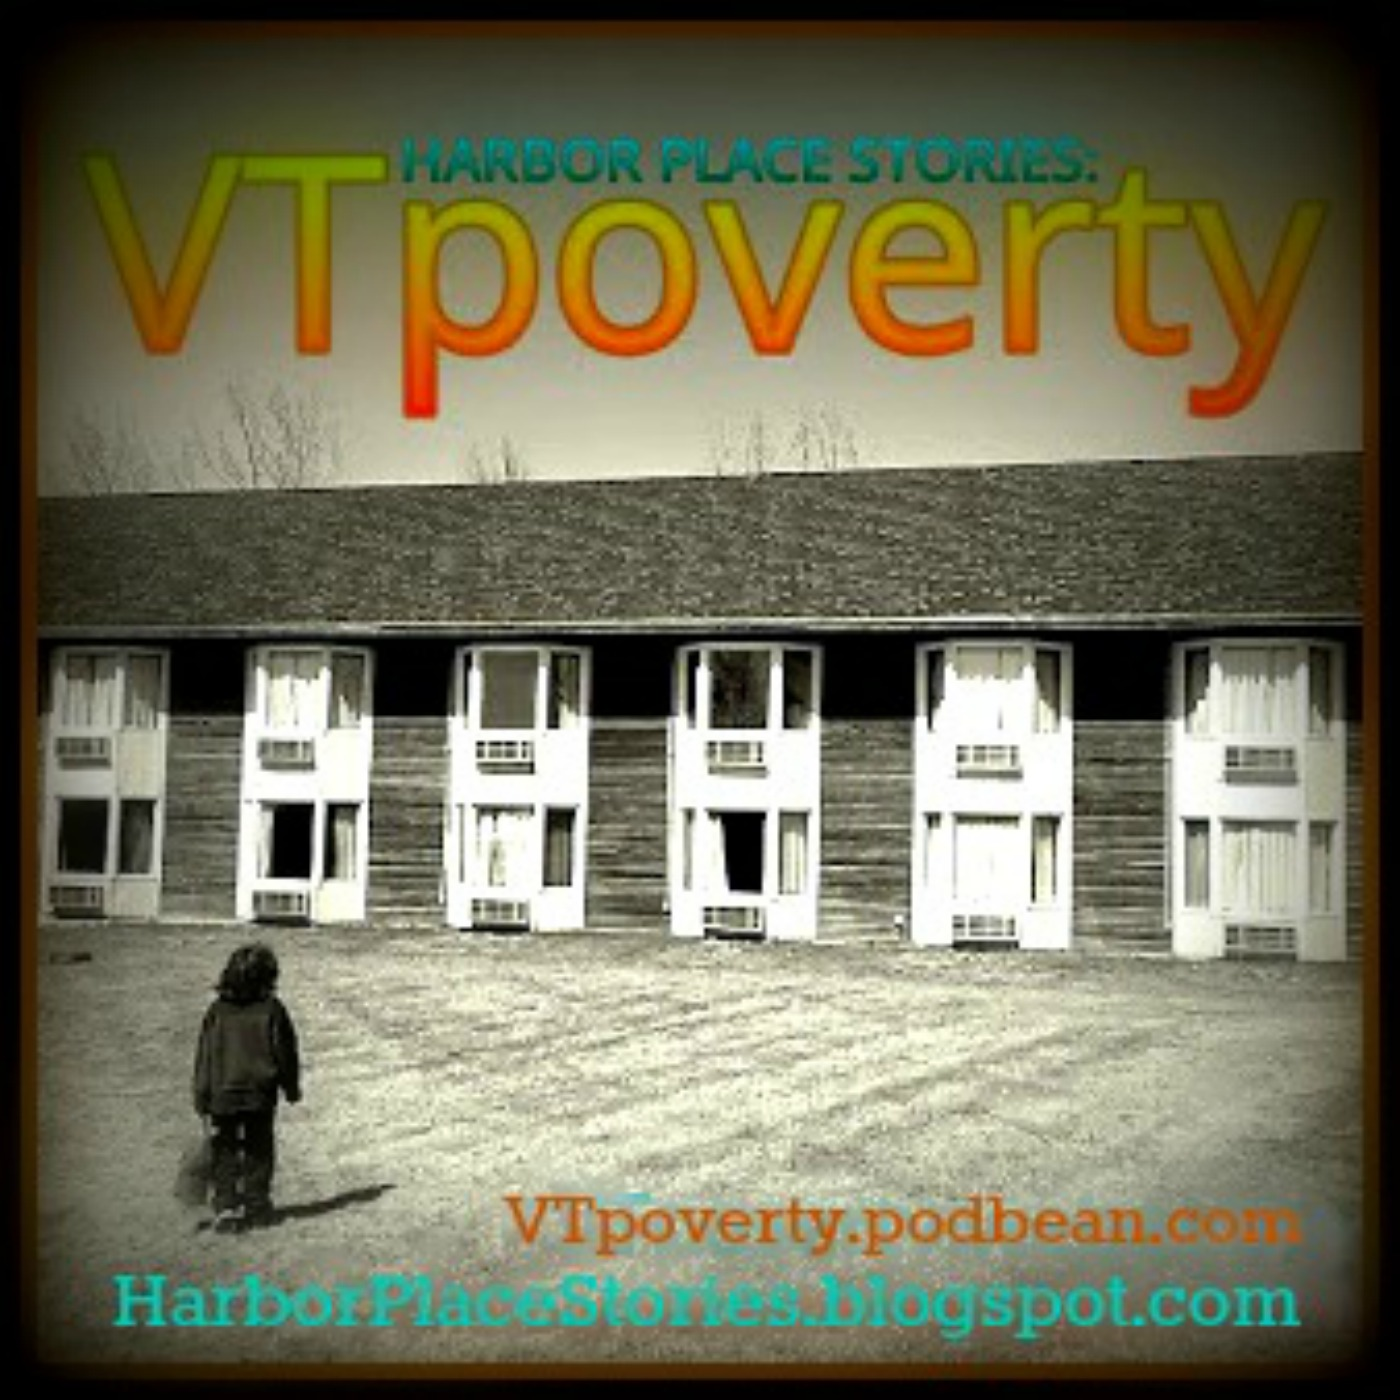 VTpoverty Podcast